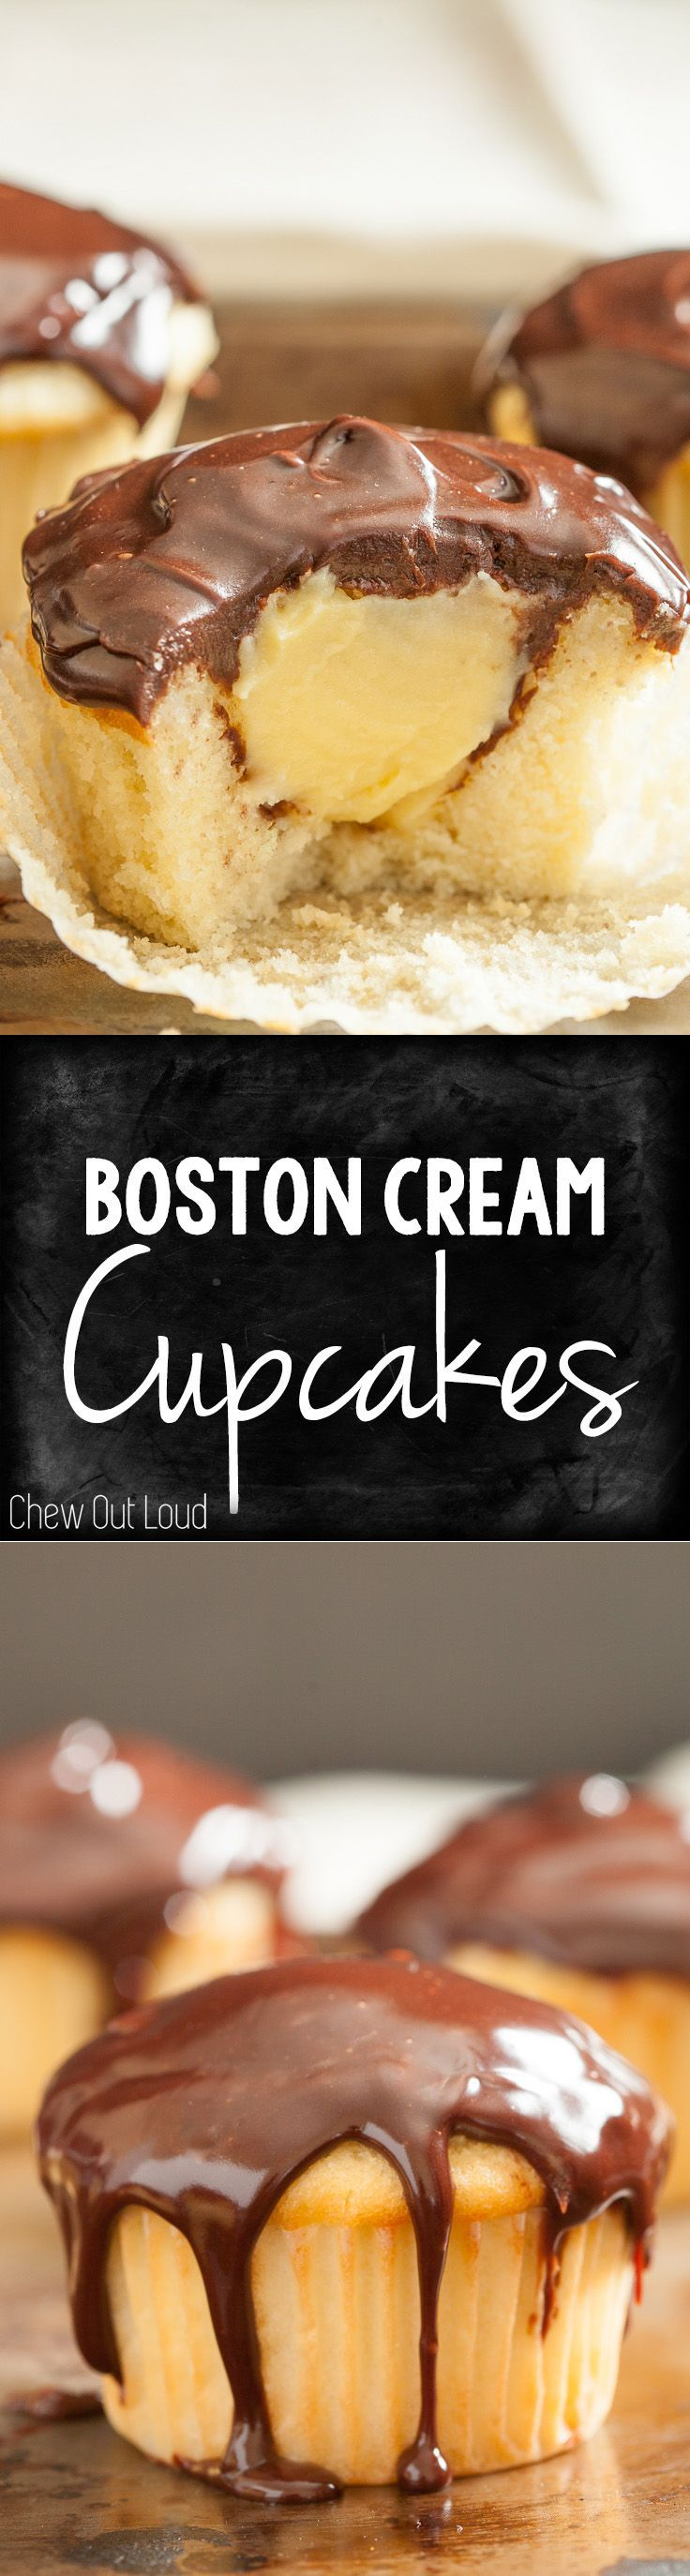 Boston Cream Cupcakes! Tender soft cakes filled with golden custard and topped with fugdy chocolate ganache. Irresistible!